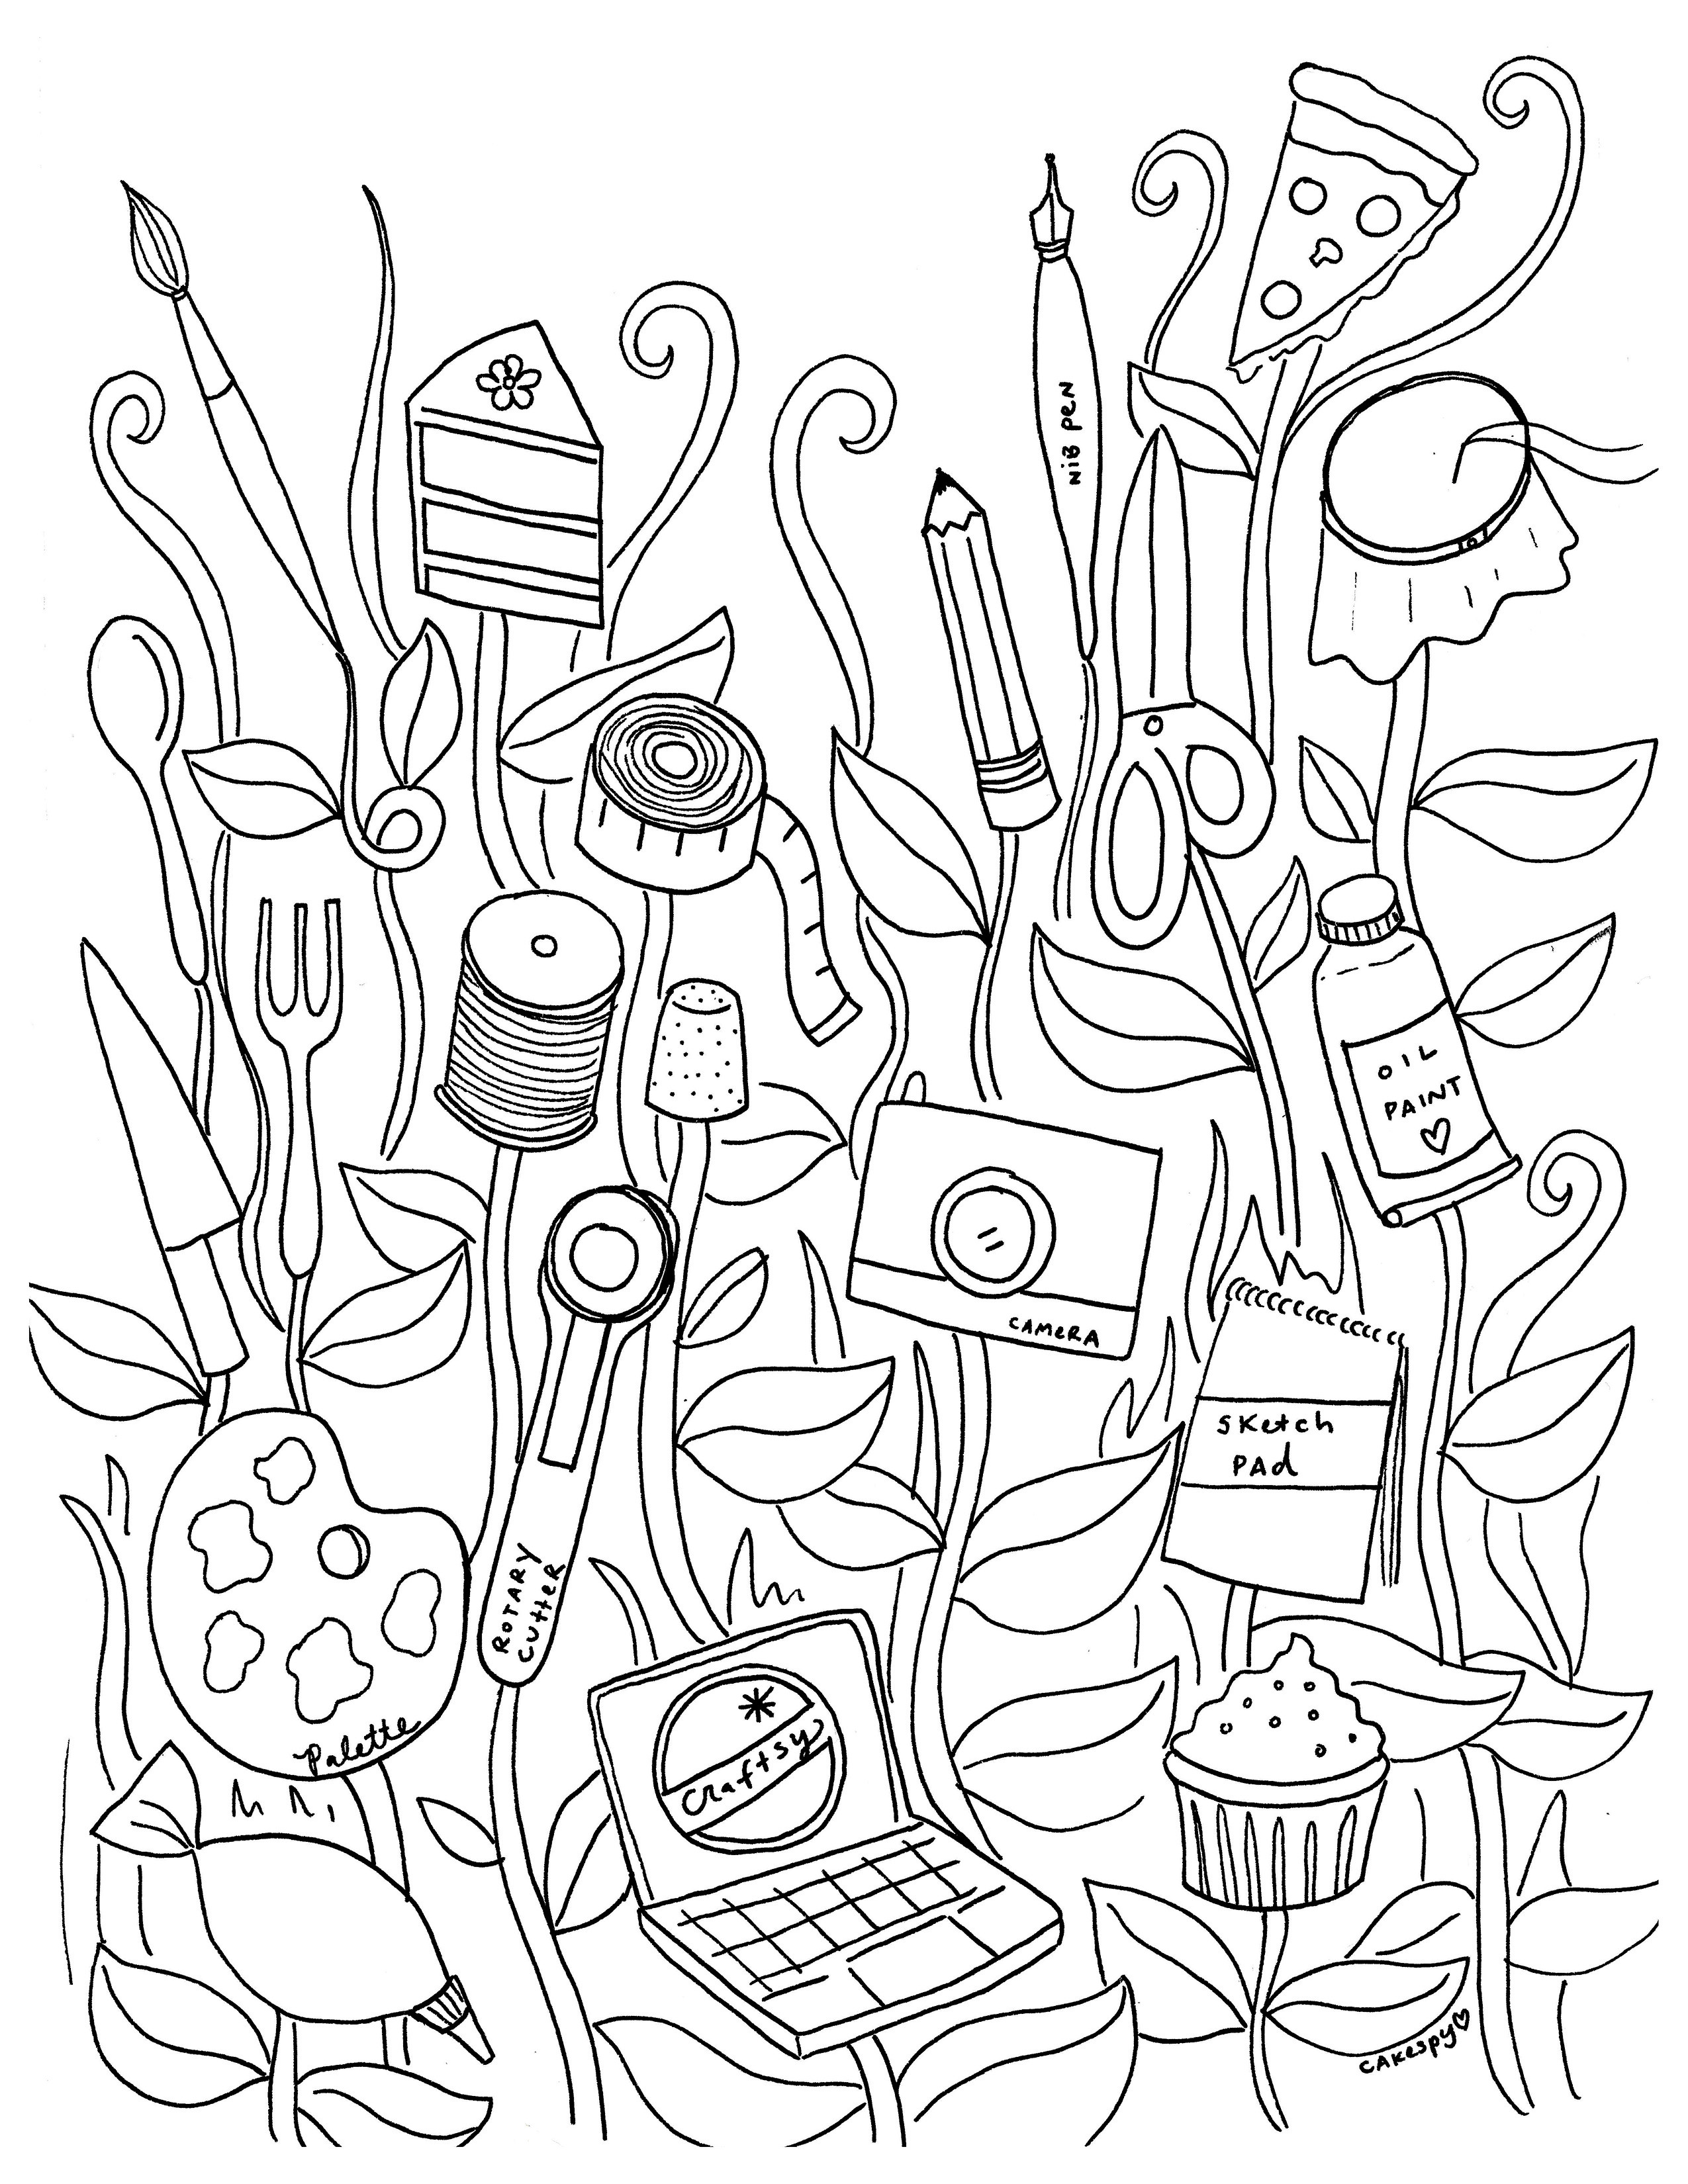 Adult Coloring Book Download  Free Coloring Book Pages for Adults